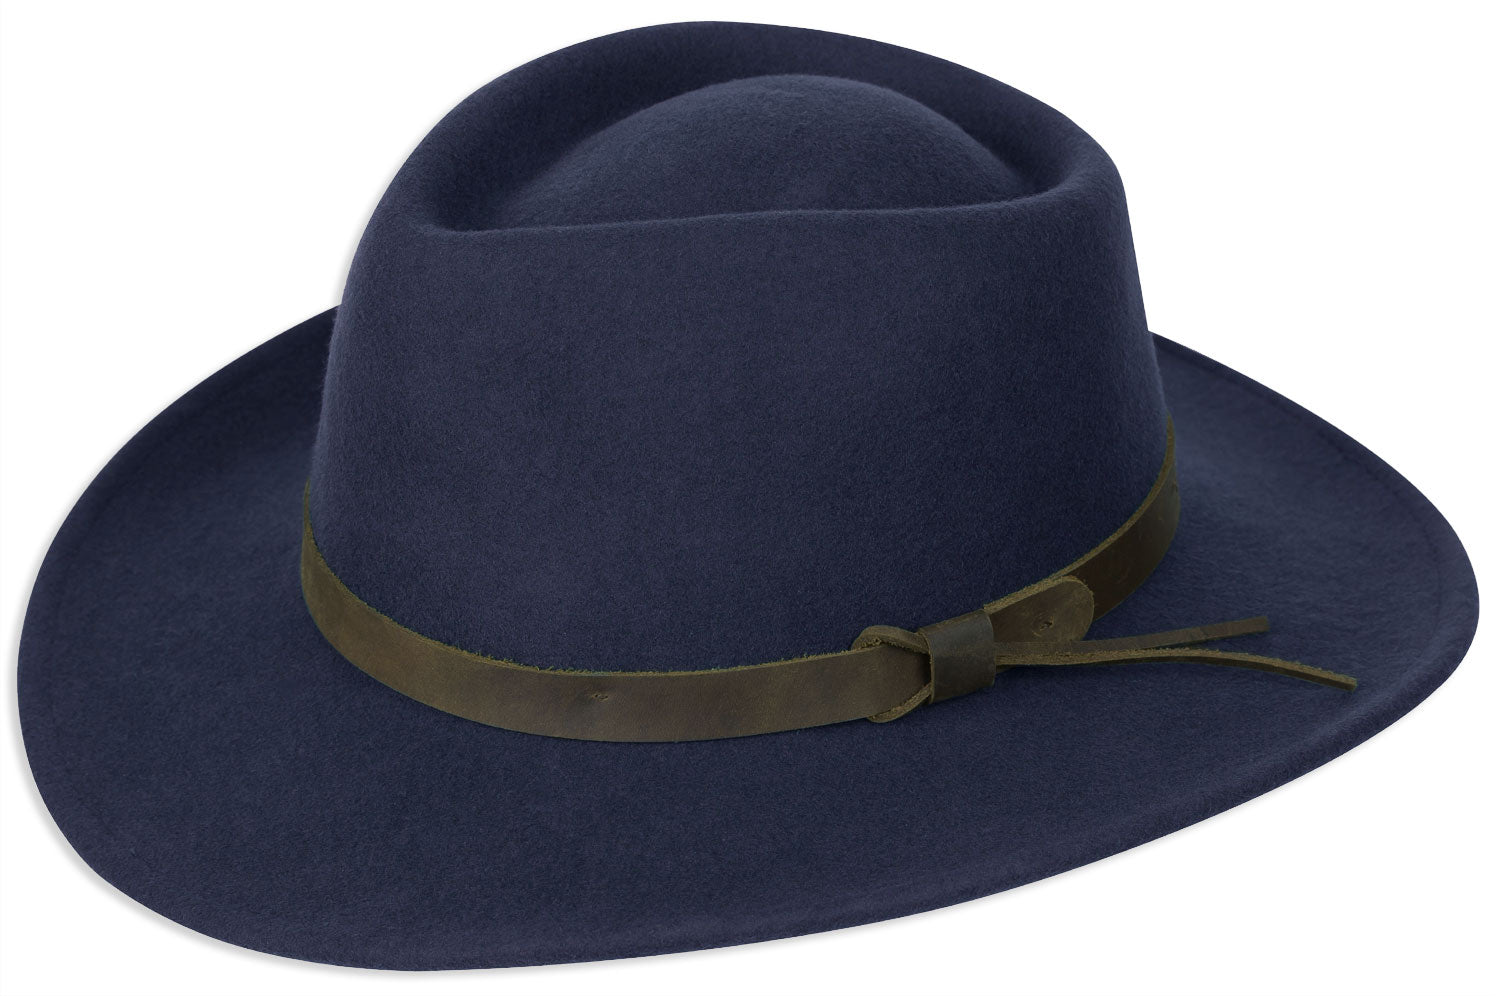 Navy Hoggs of Fife Perth Crushable Felt Hat